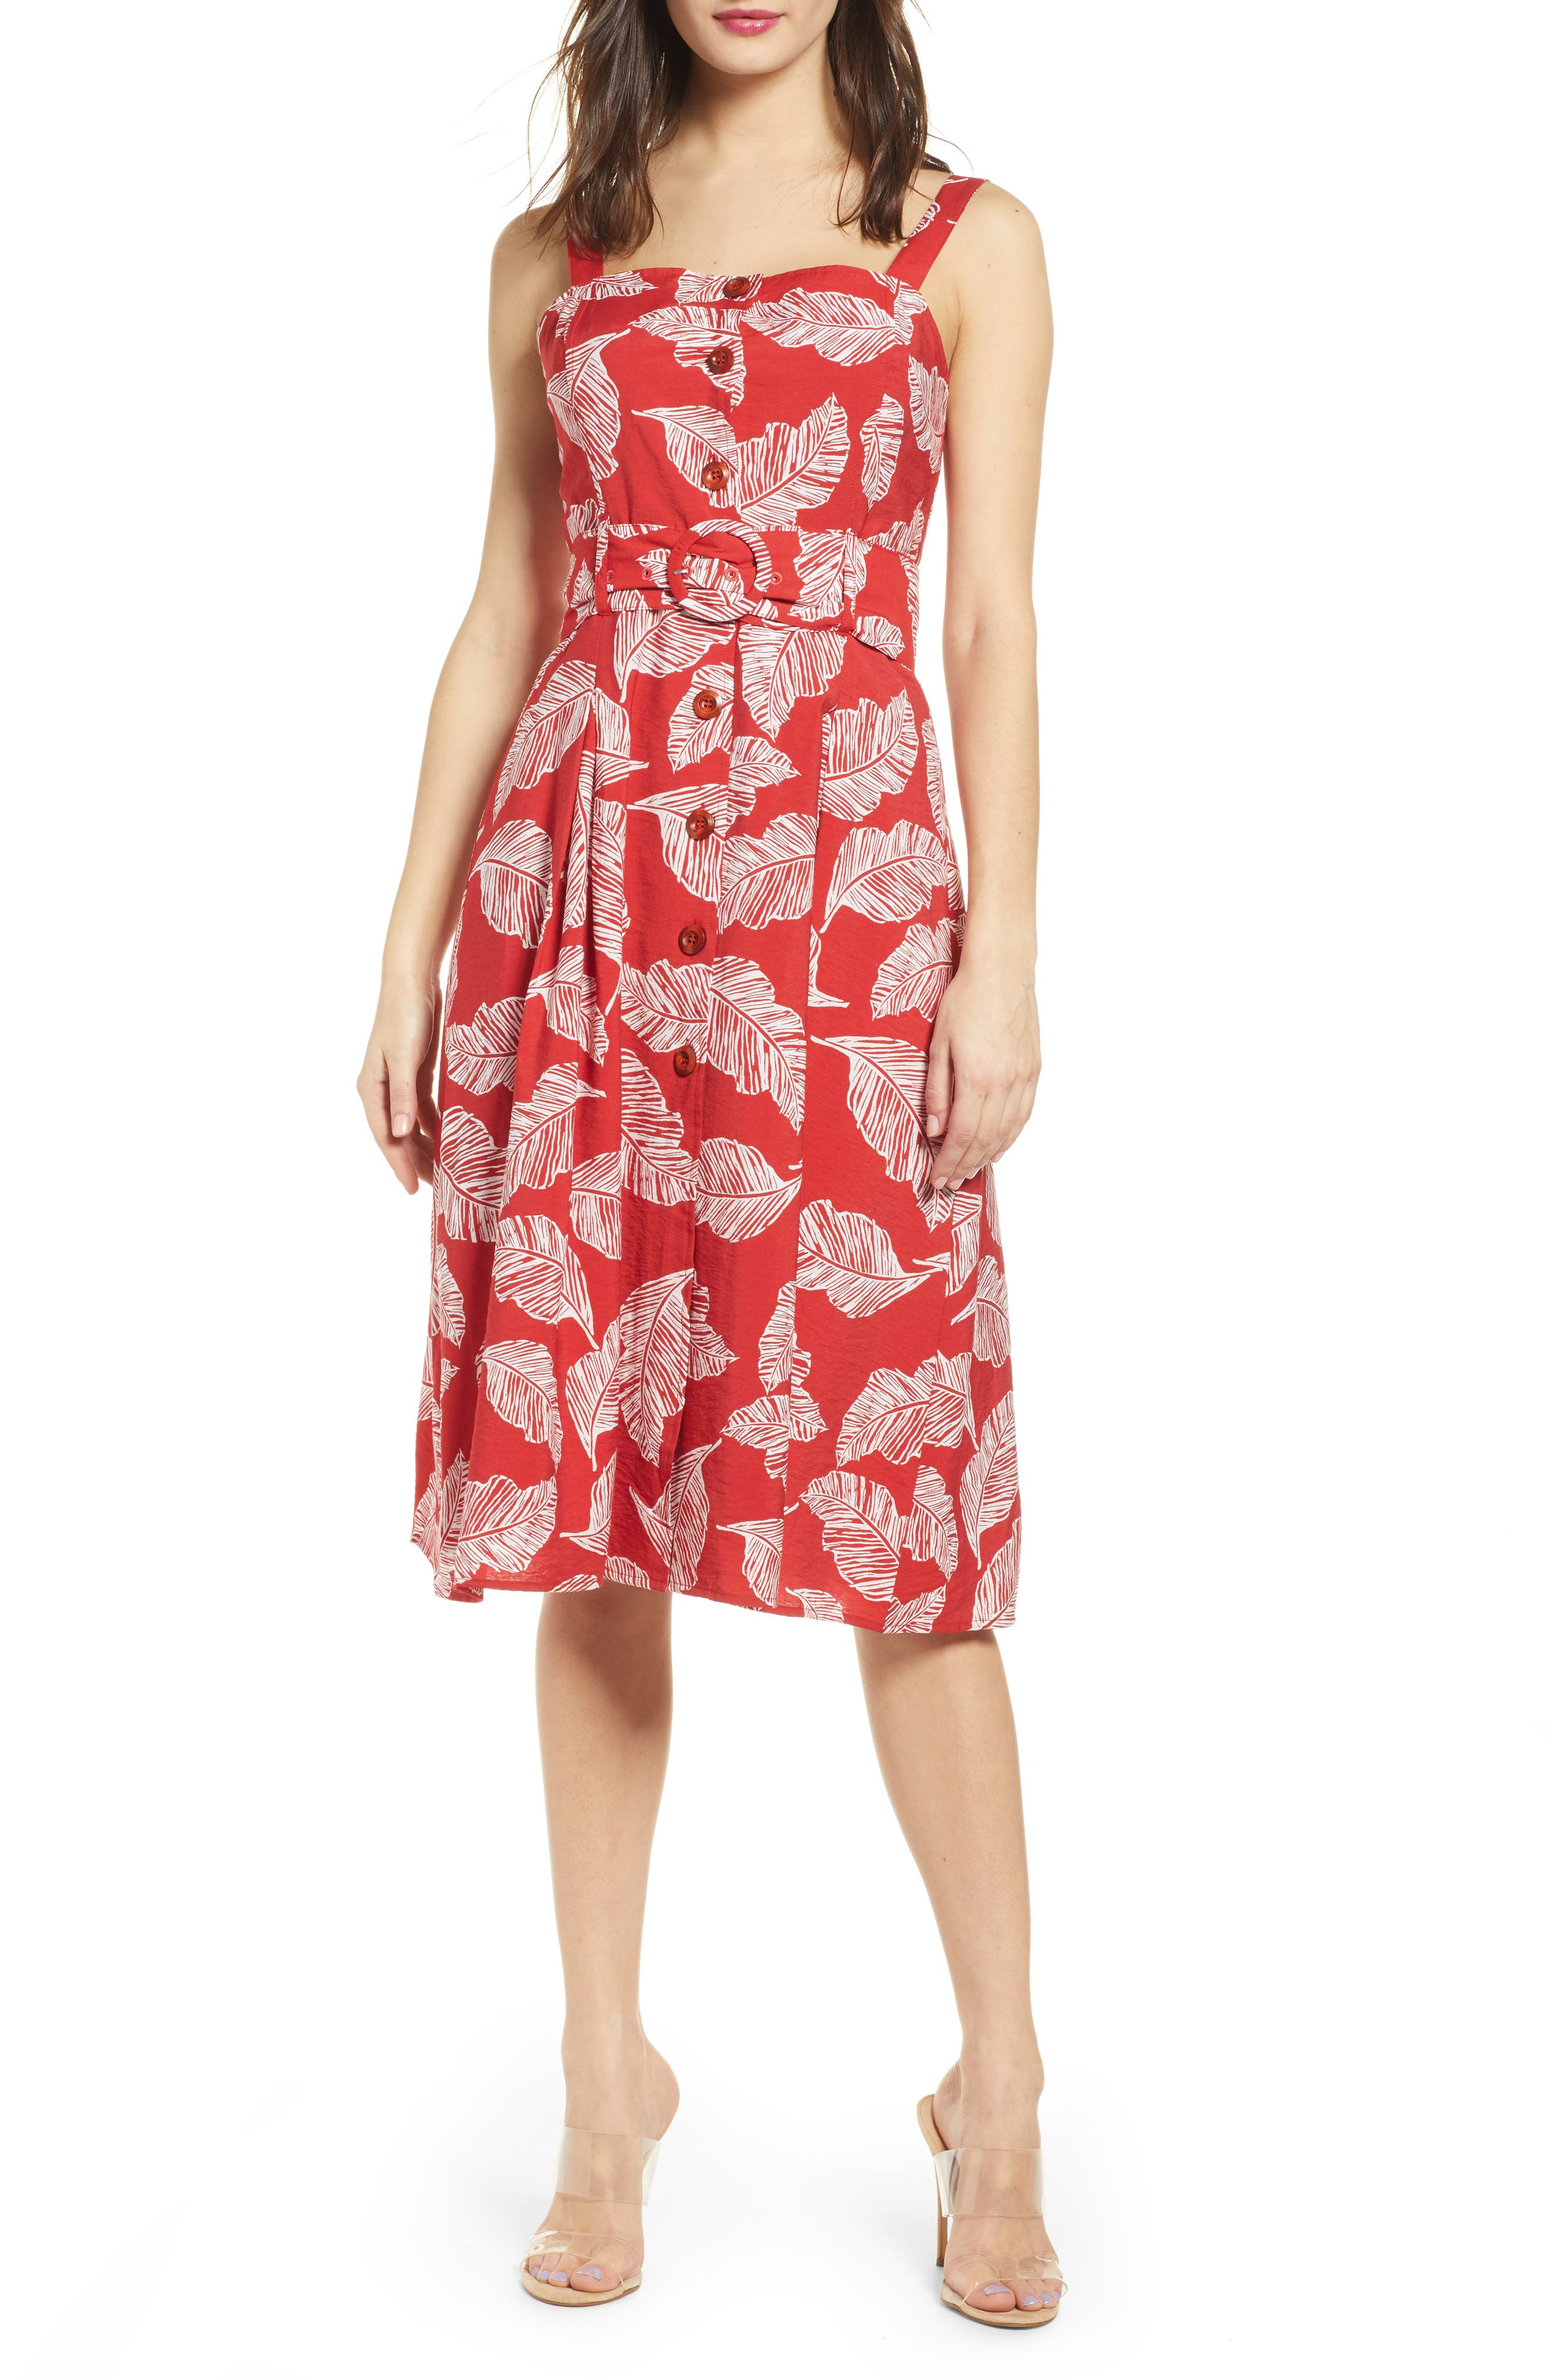 J.o.a. Button Front Fit & Flare Dress, Red